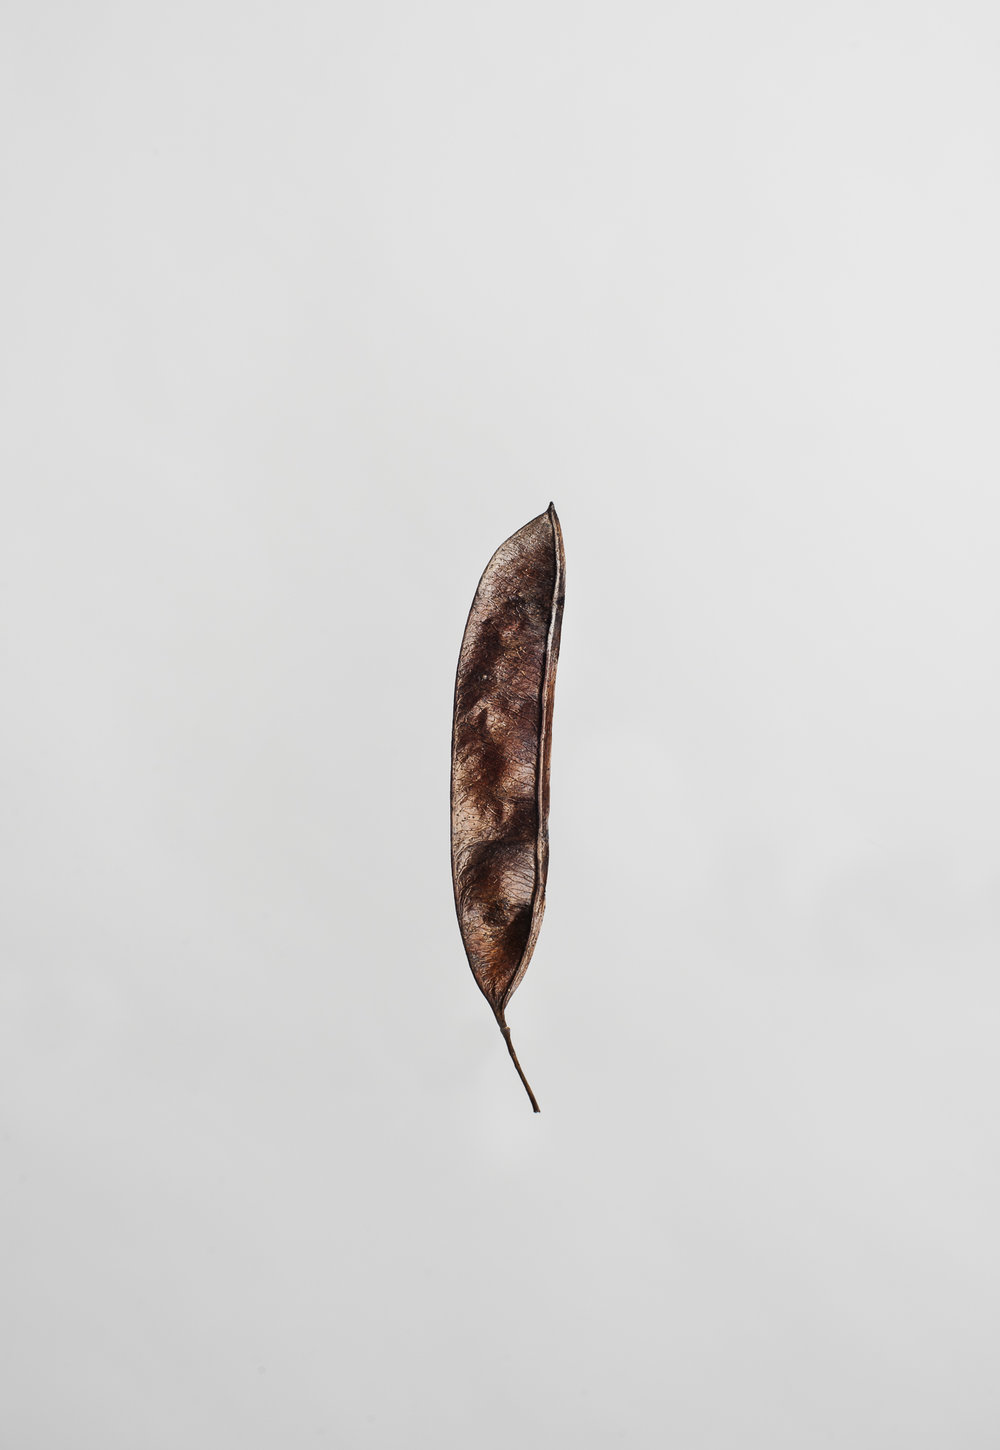 Cercis canadensis - Seedpod of Eastern Redbud Tree